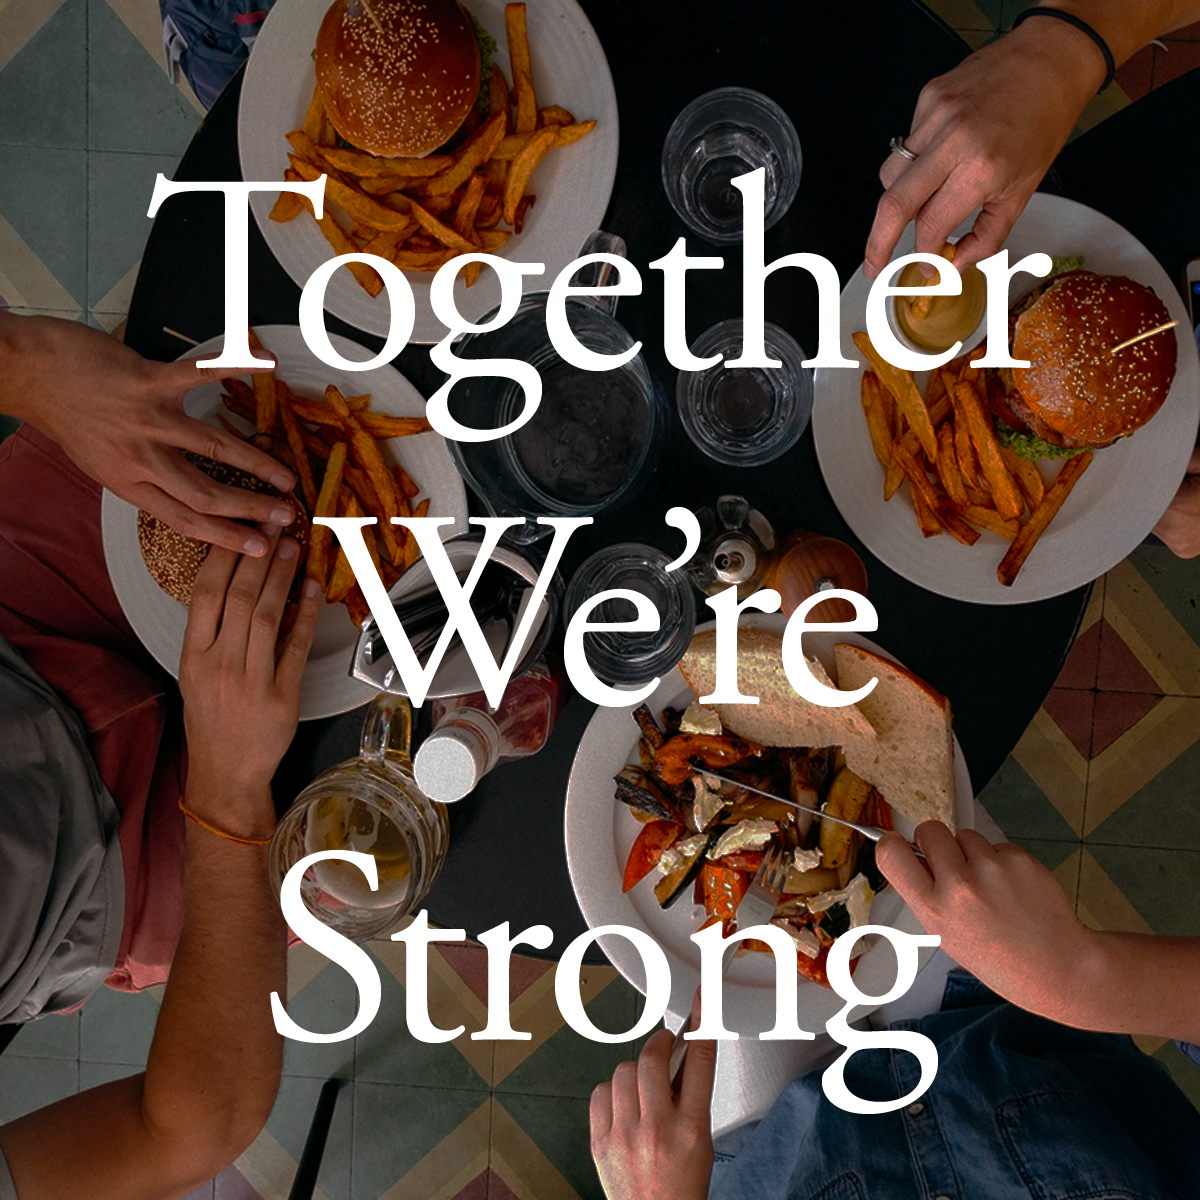 Best Use     As a family cooking activity   Nutritional Value     Use this activity to make a family spaghetti meal together and discuss how God gives us strength as we stand together.